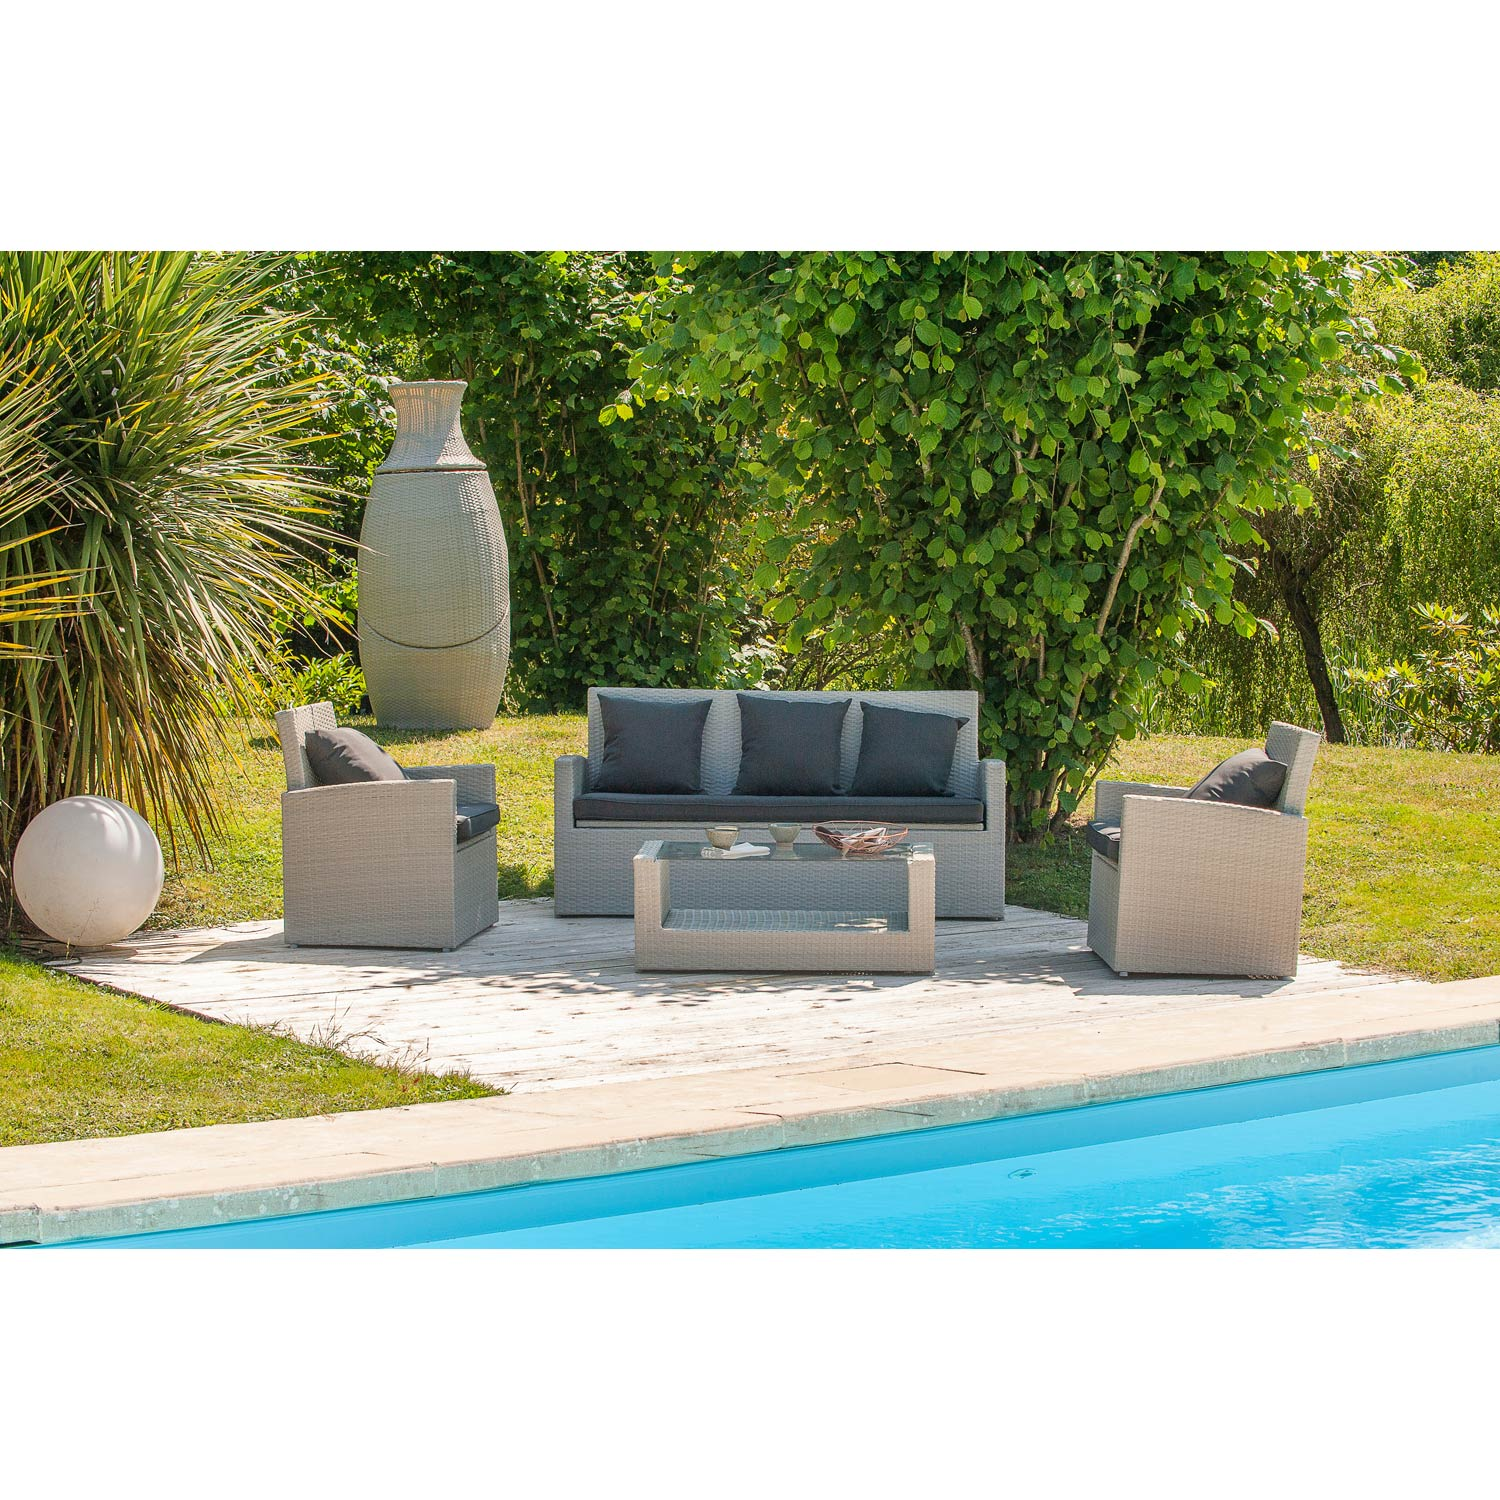 Leroy Merlin Table Exterieur Cool Salon Bas De Jardin Rsine Tresse Gris Personnes With